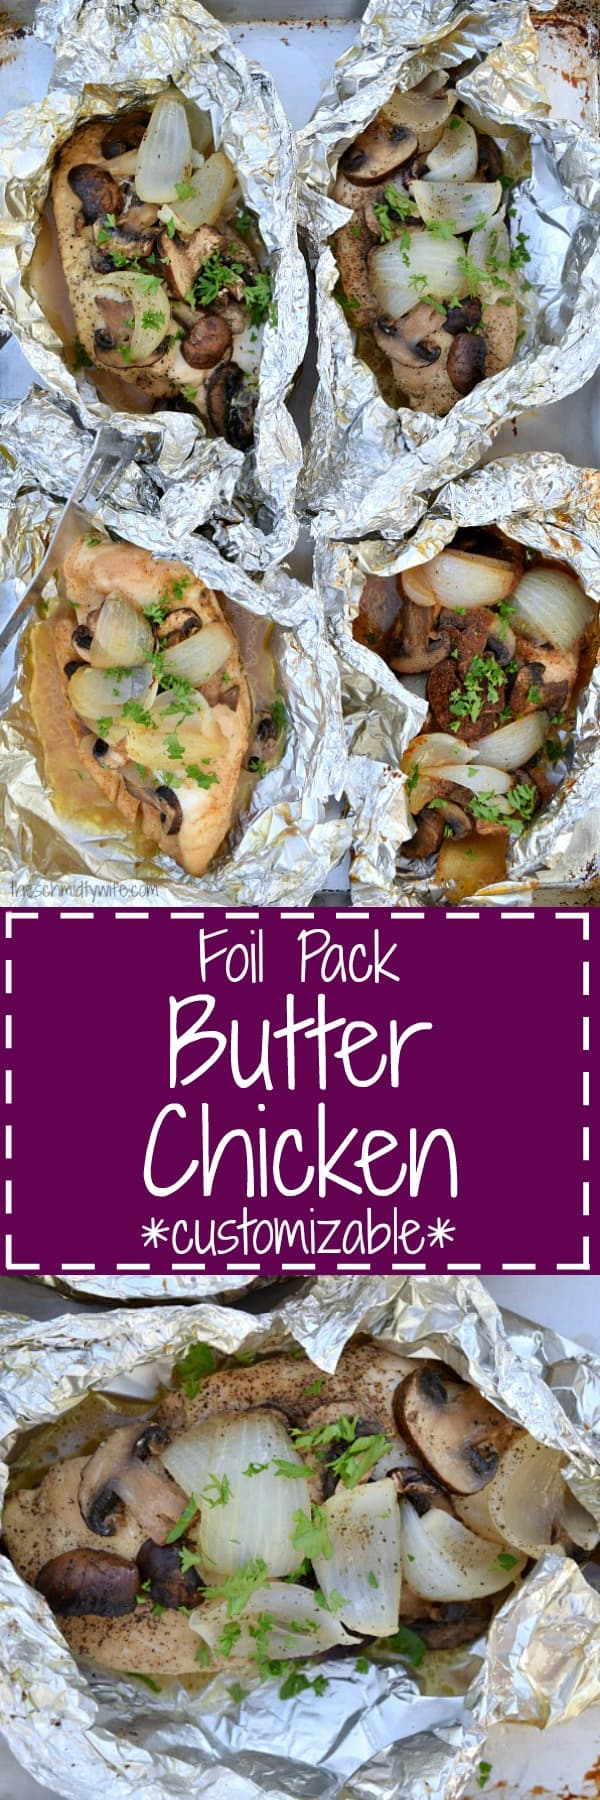 Foil Pack Butter Chicken